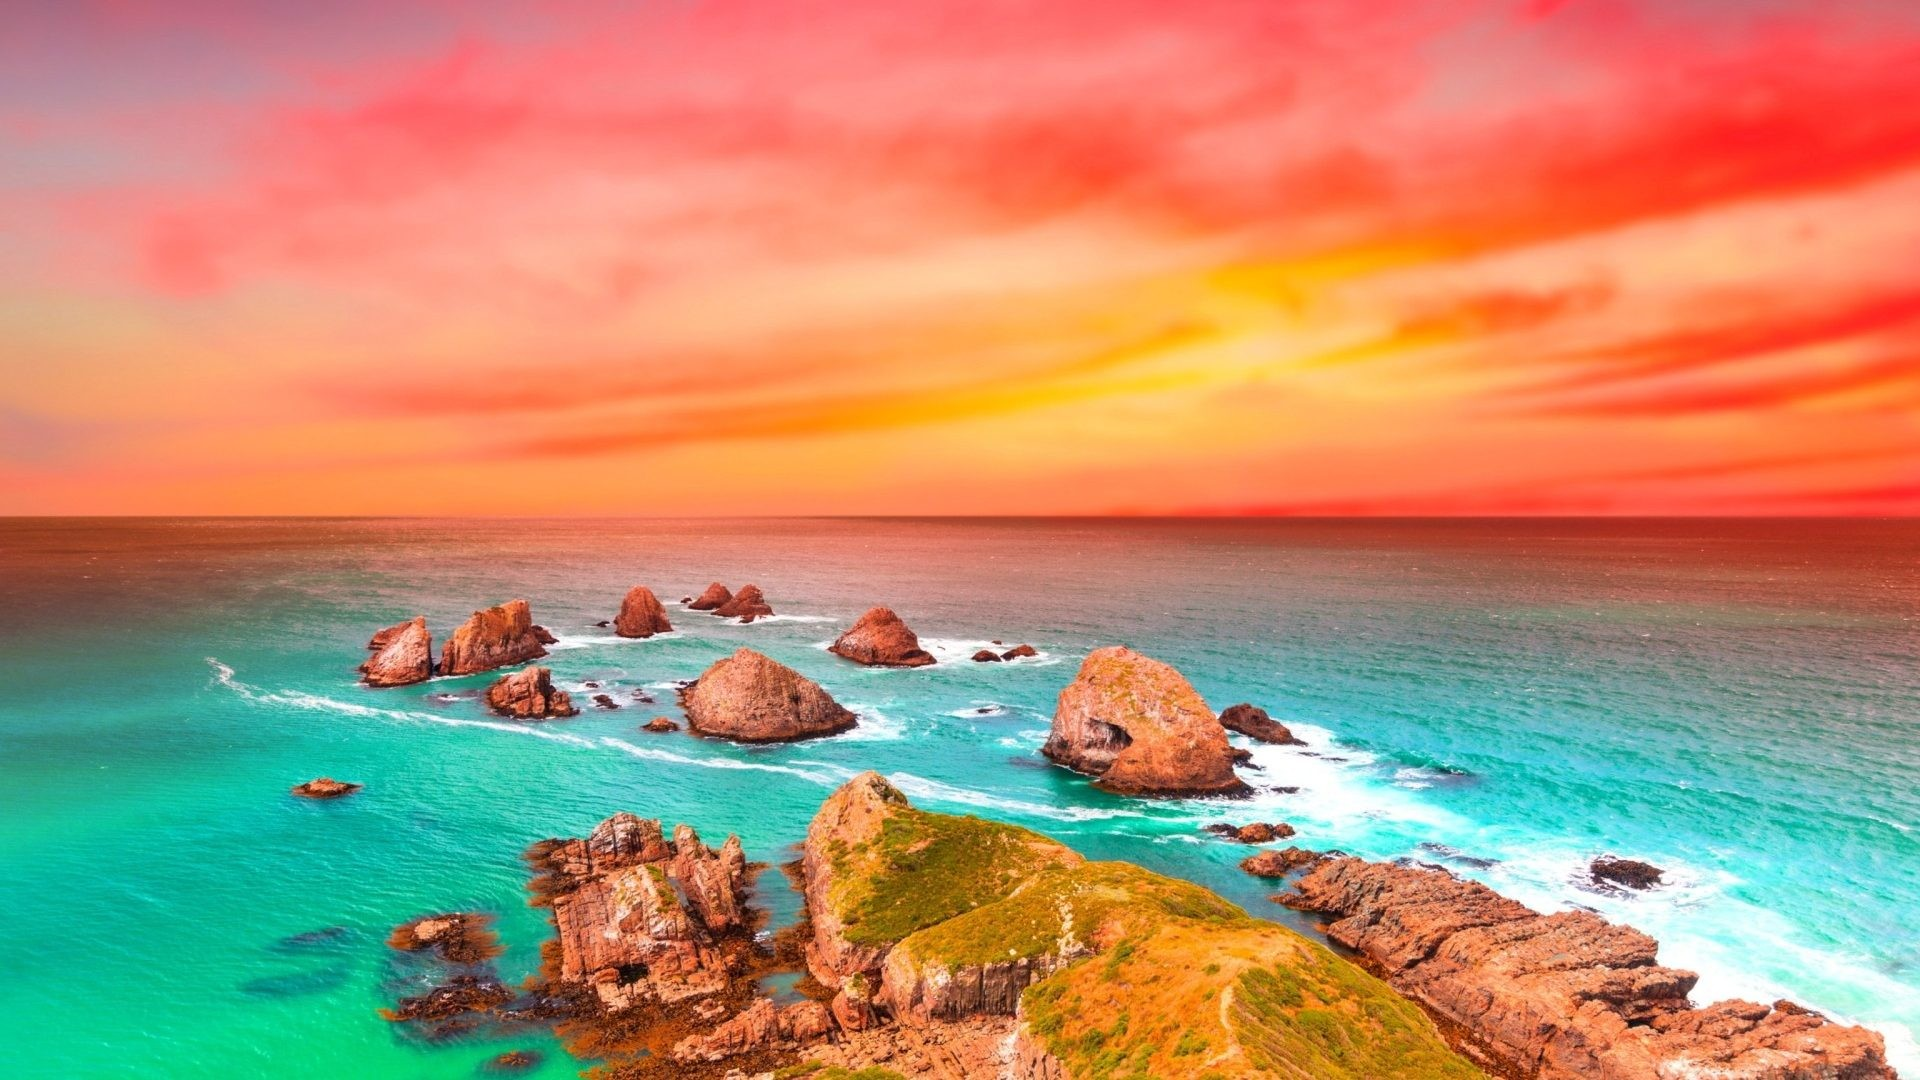 1920x1080 Beautiful Shore Colorful Sunset Sea Rocks Colors Ocean Magnificent Scenery  Wallpaper For Ipad - 1920x1200